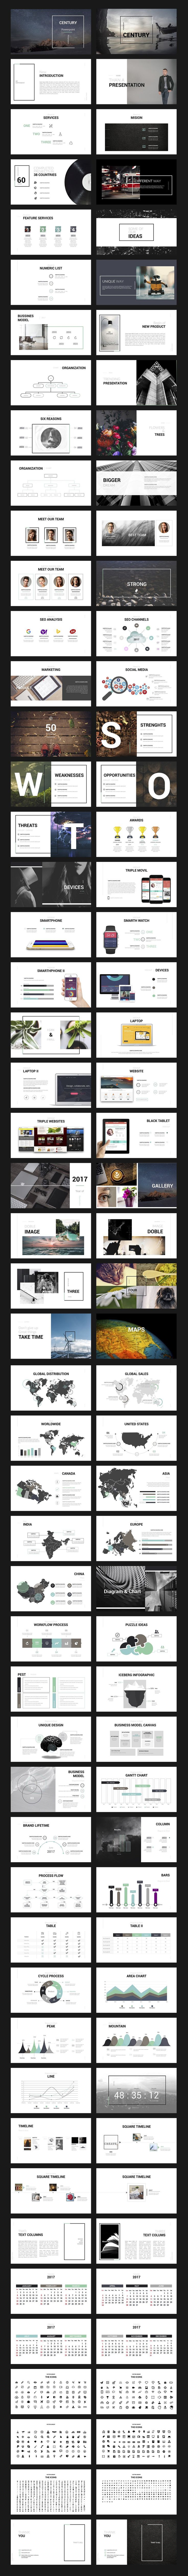 Century Powerpoint Template by Zacomic Studios on @creativemarket